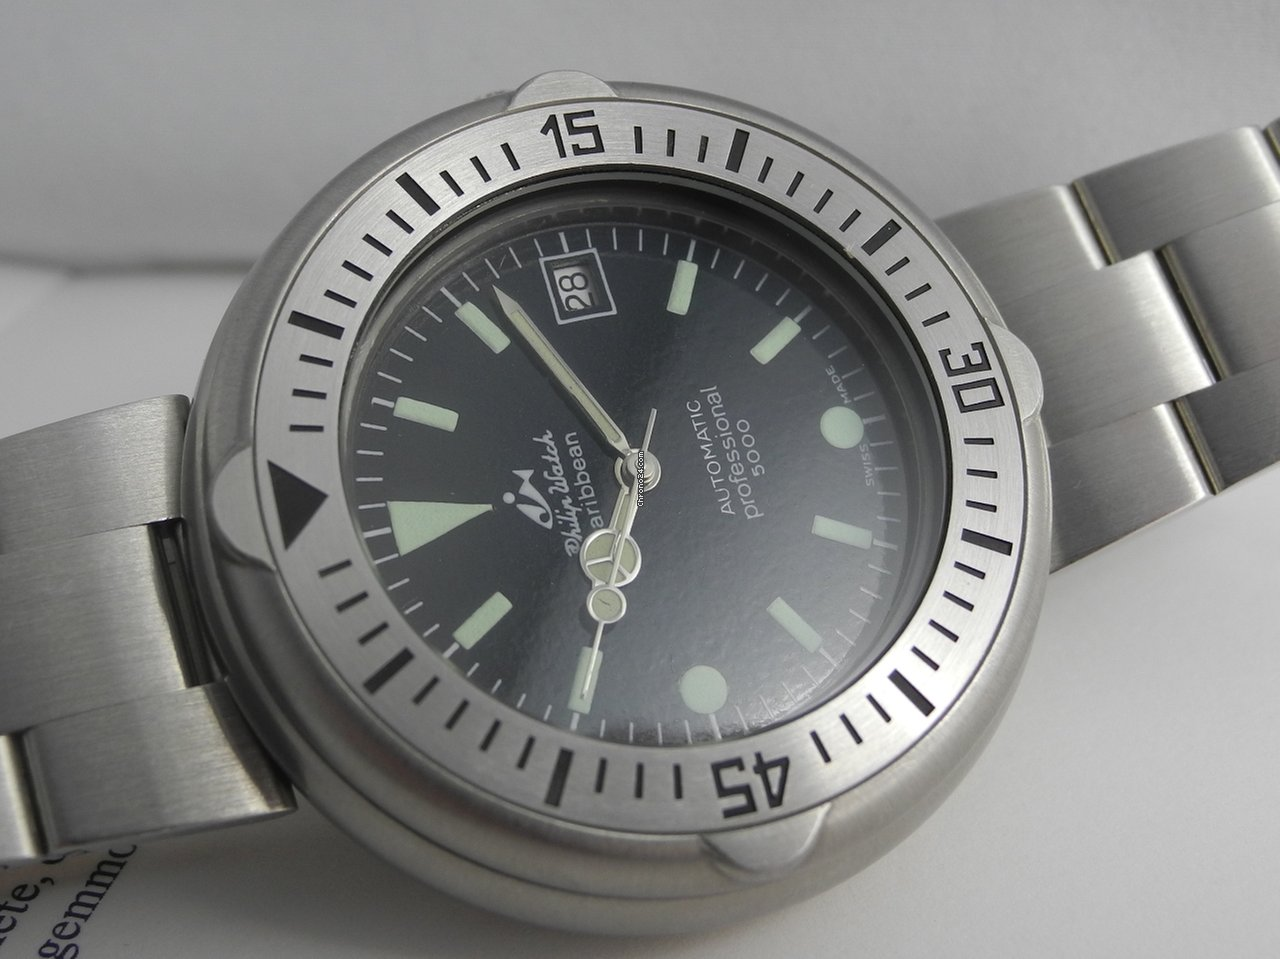 nuovo stile 4c506 c3ed3 Philip Watch Caribbean 5000 automatic New Old Stock